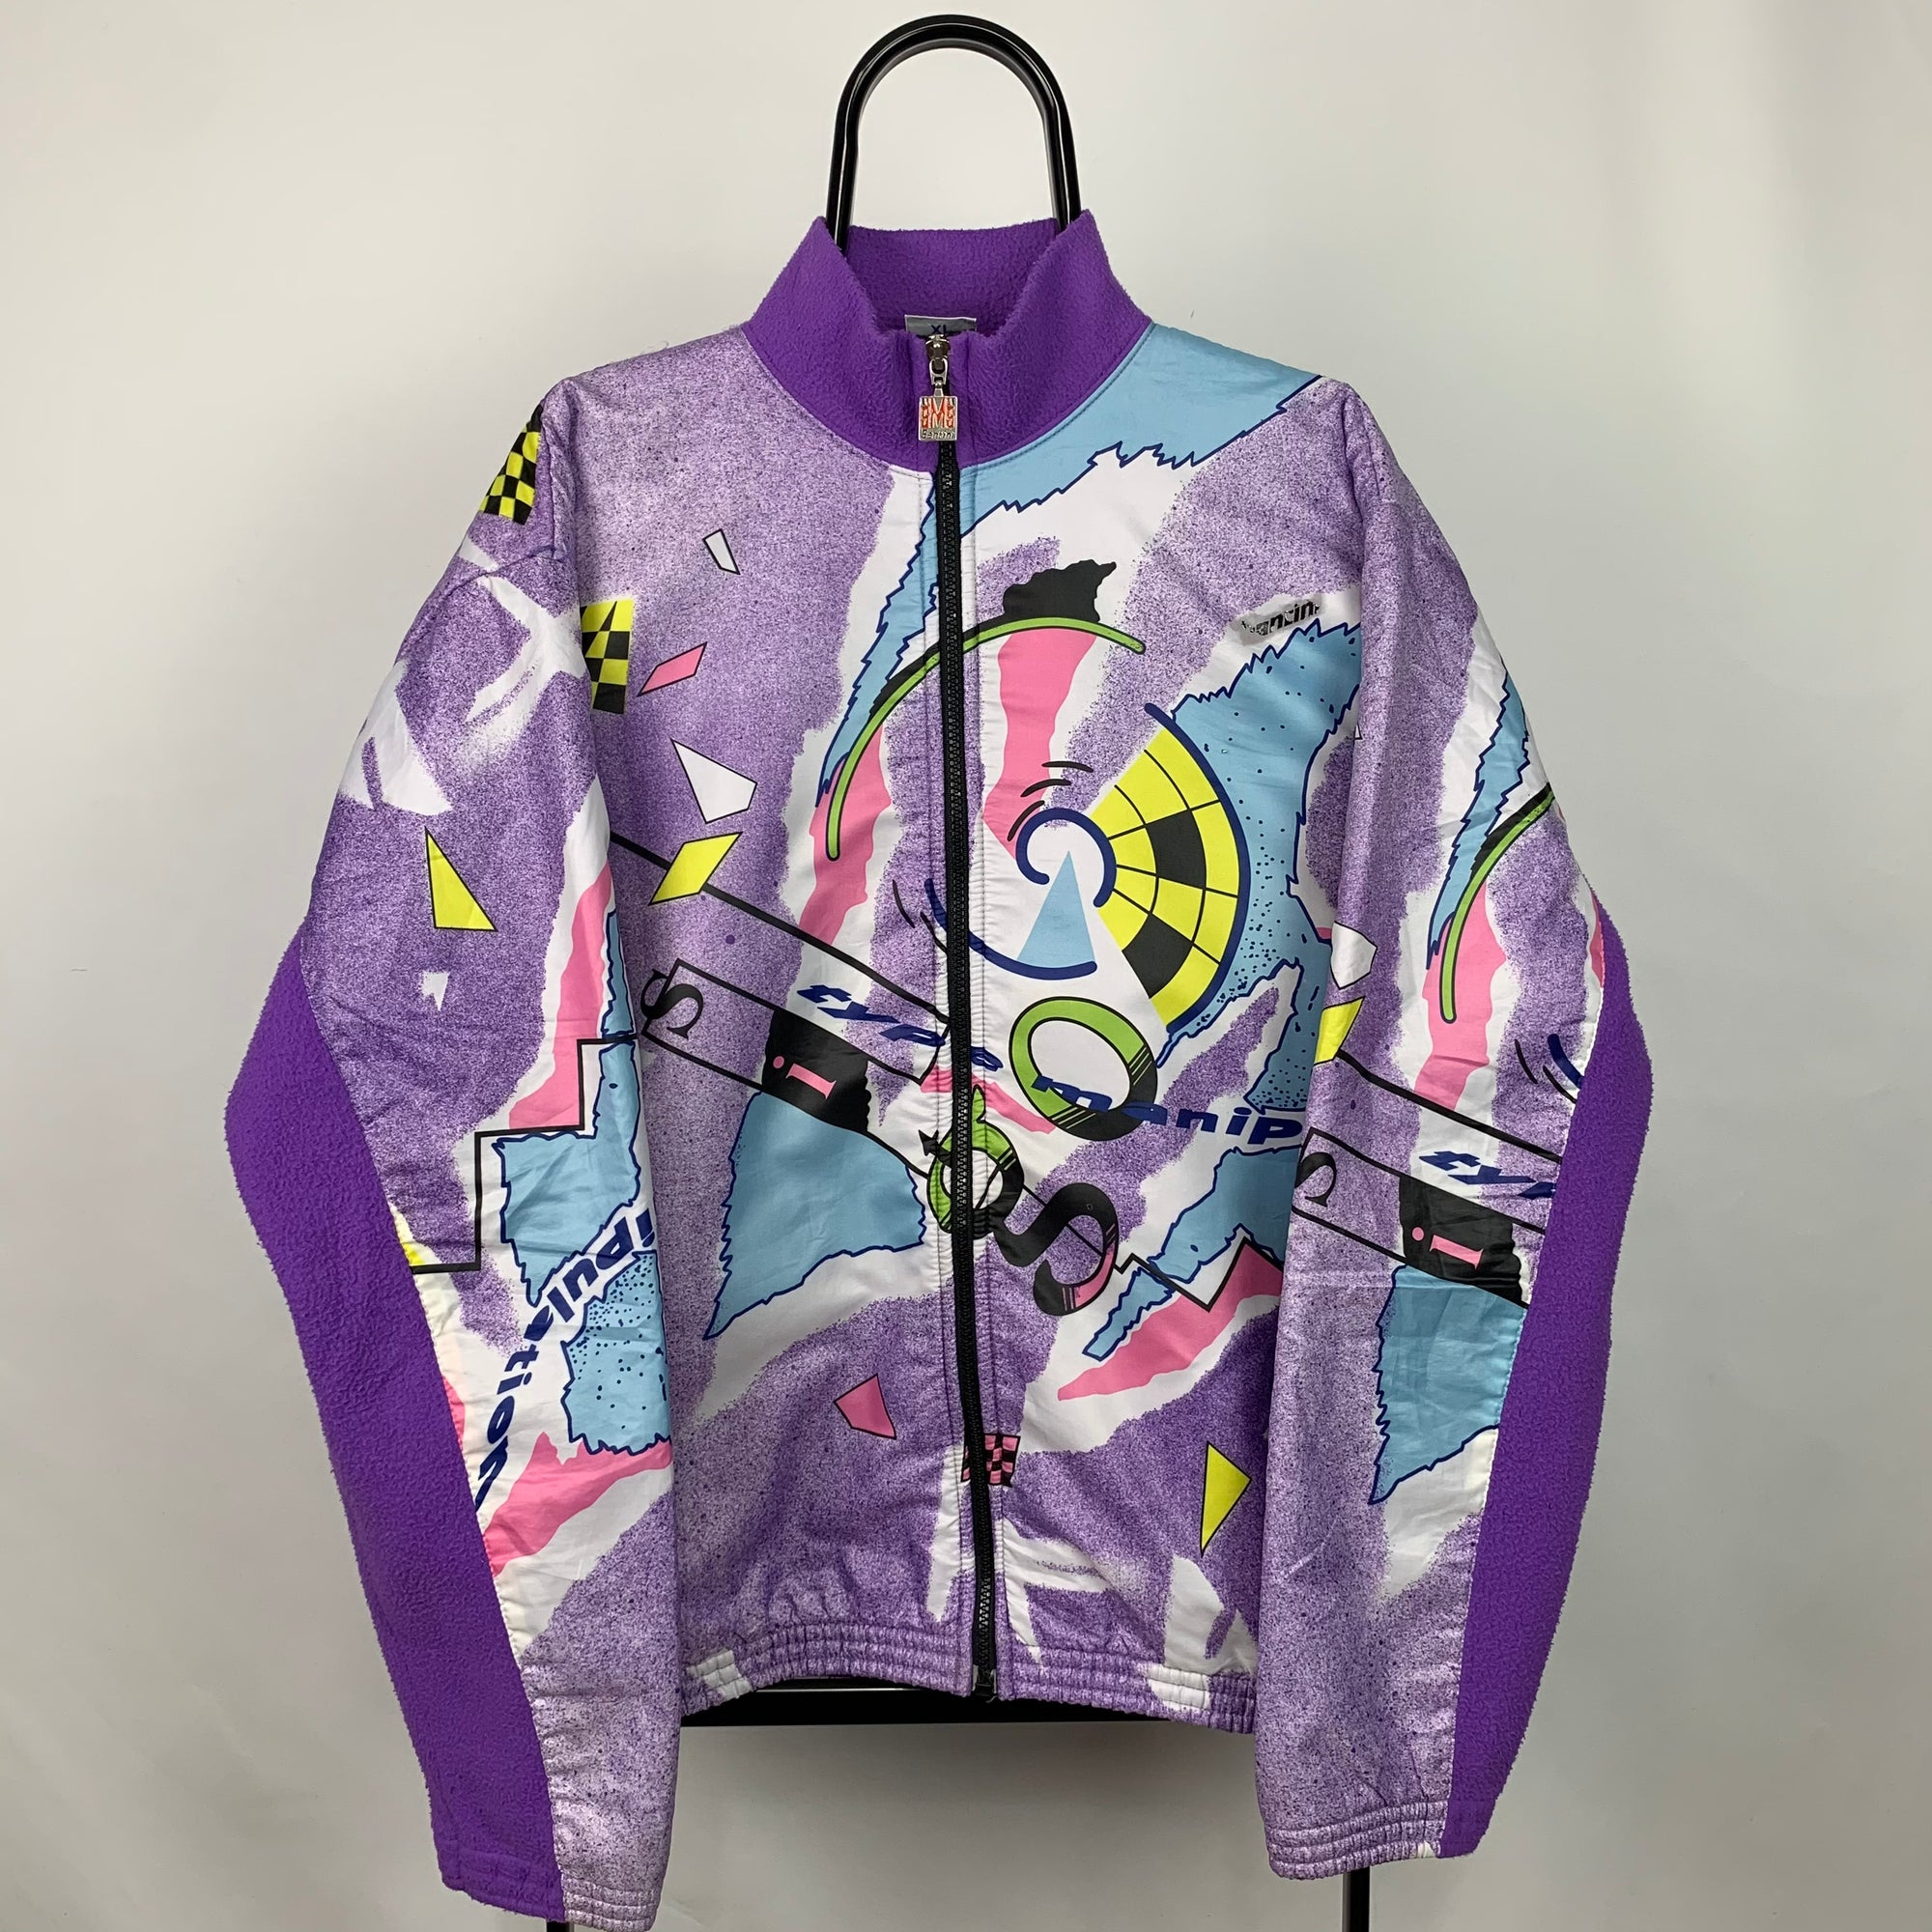 Vintage Crazy Print Zip Up Windbreaker Fleece - Men's Large/Women's XL